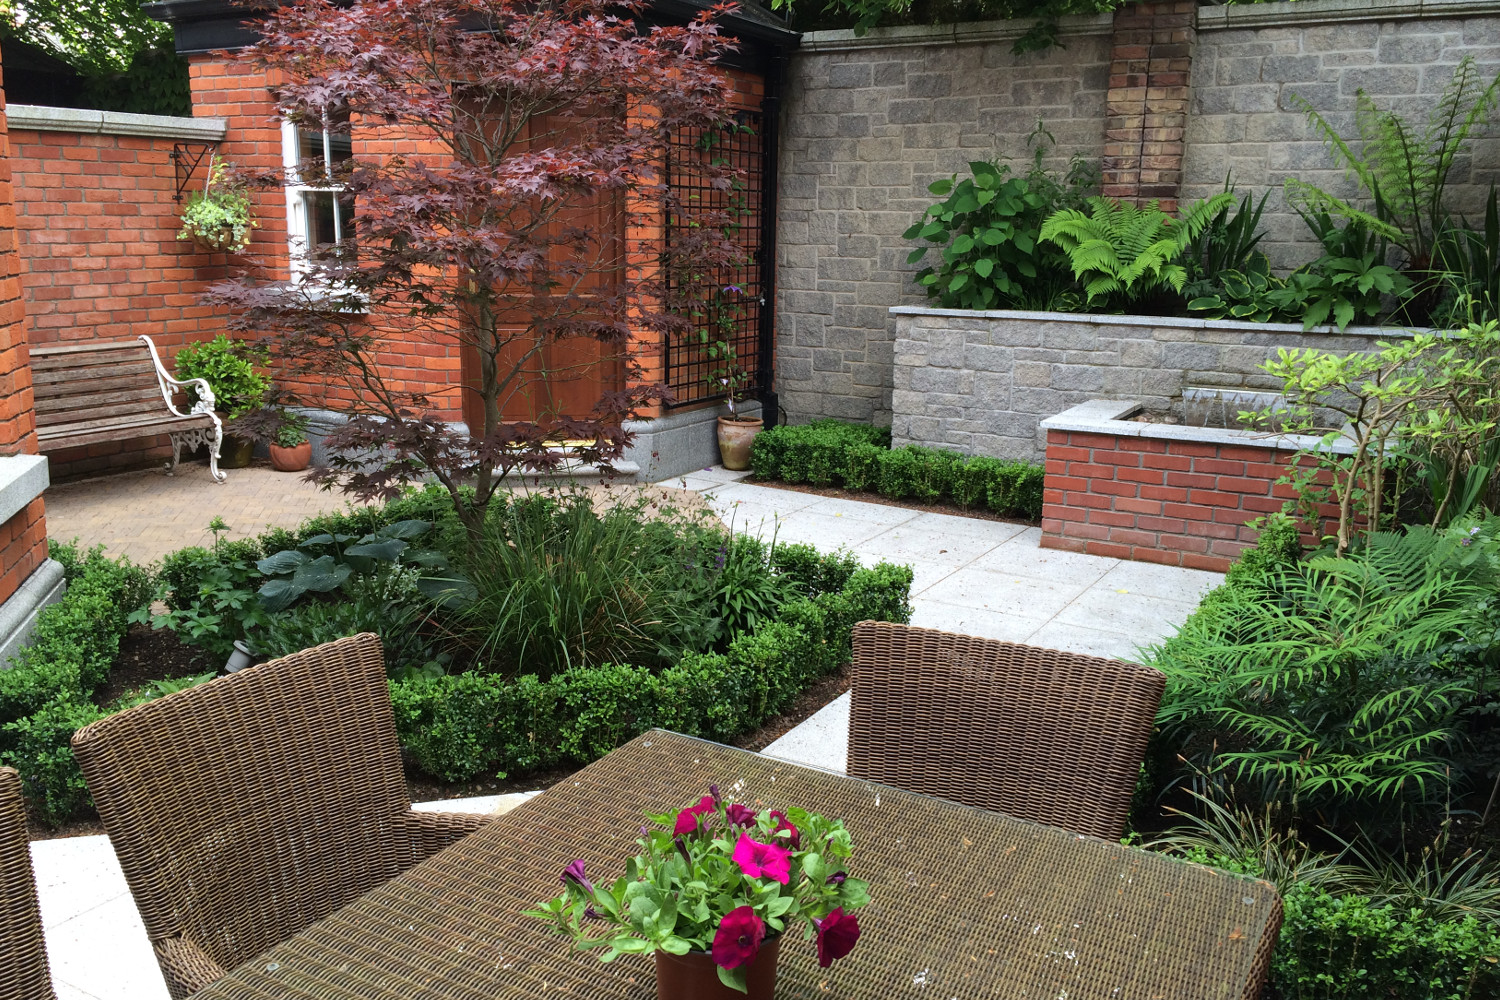 Courtyard Designs Cute Courtyard Garden In Terenure Dublin Tim Austen Garden Designs